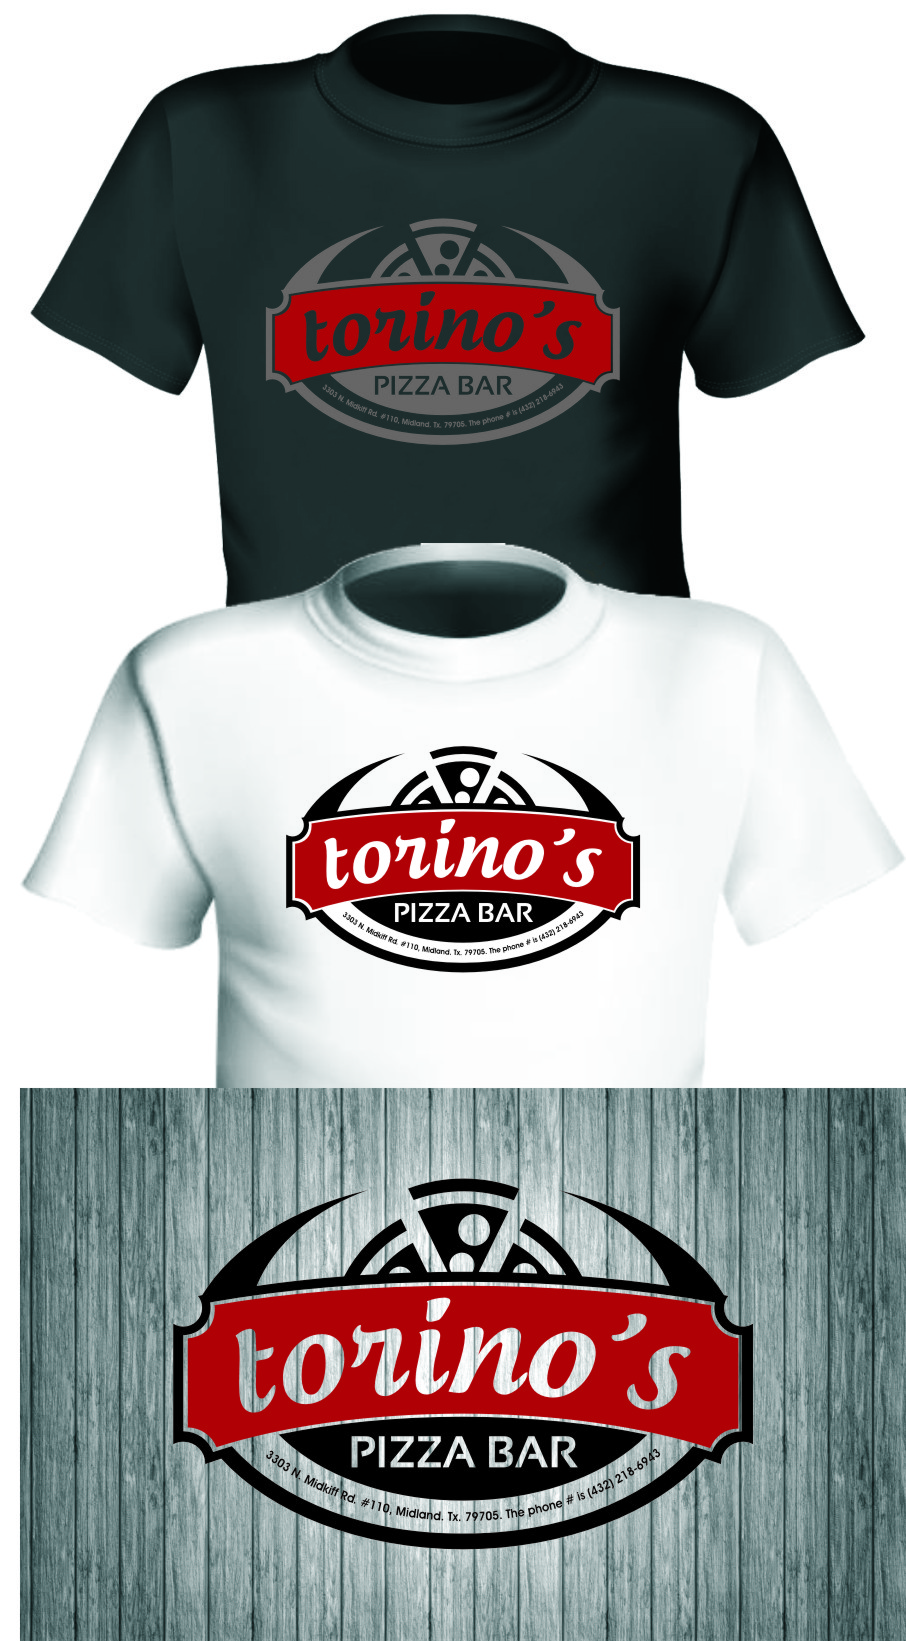 Custom Design by Ngepet_art - Entry No. 42 in the Custom Design Contest Torino's Pizza Bar Custom Design.